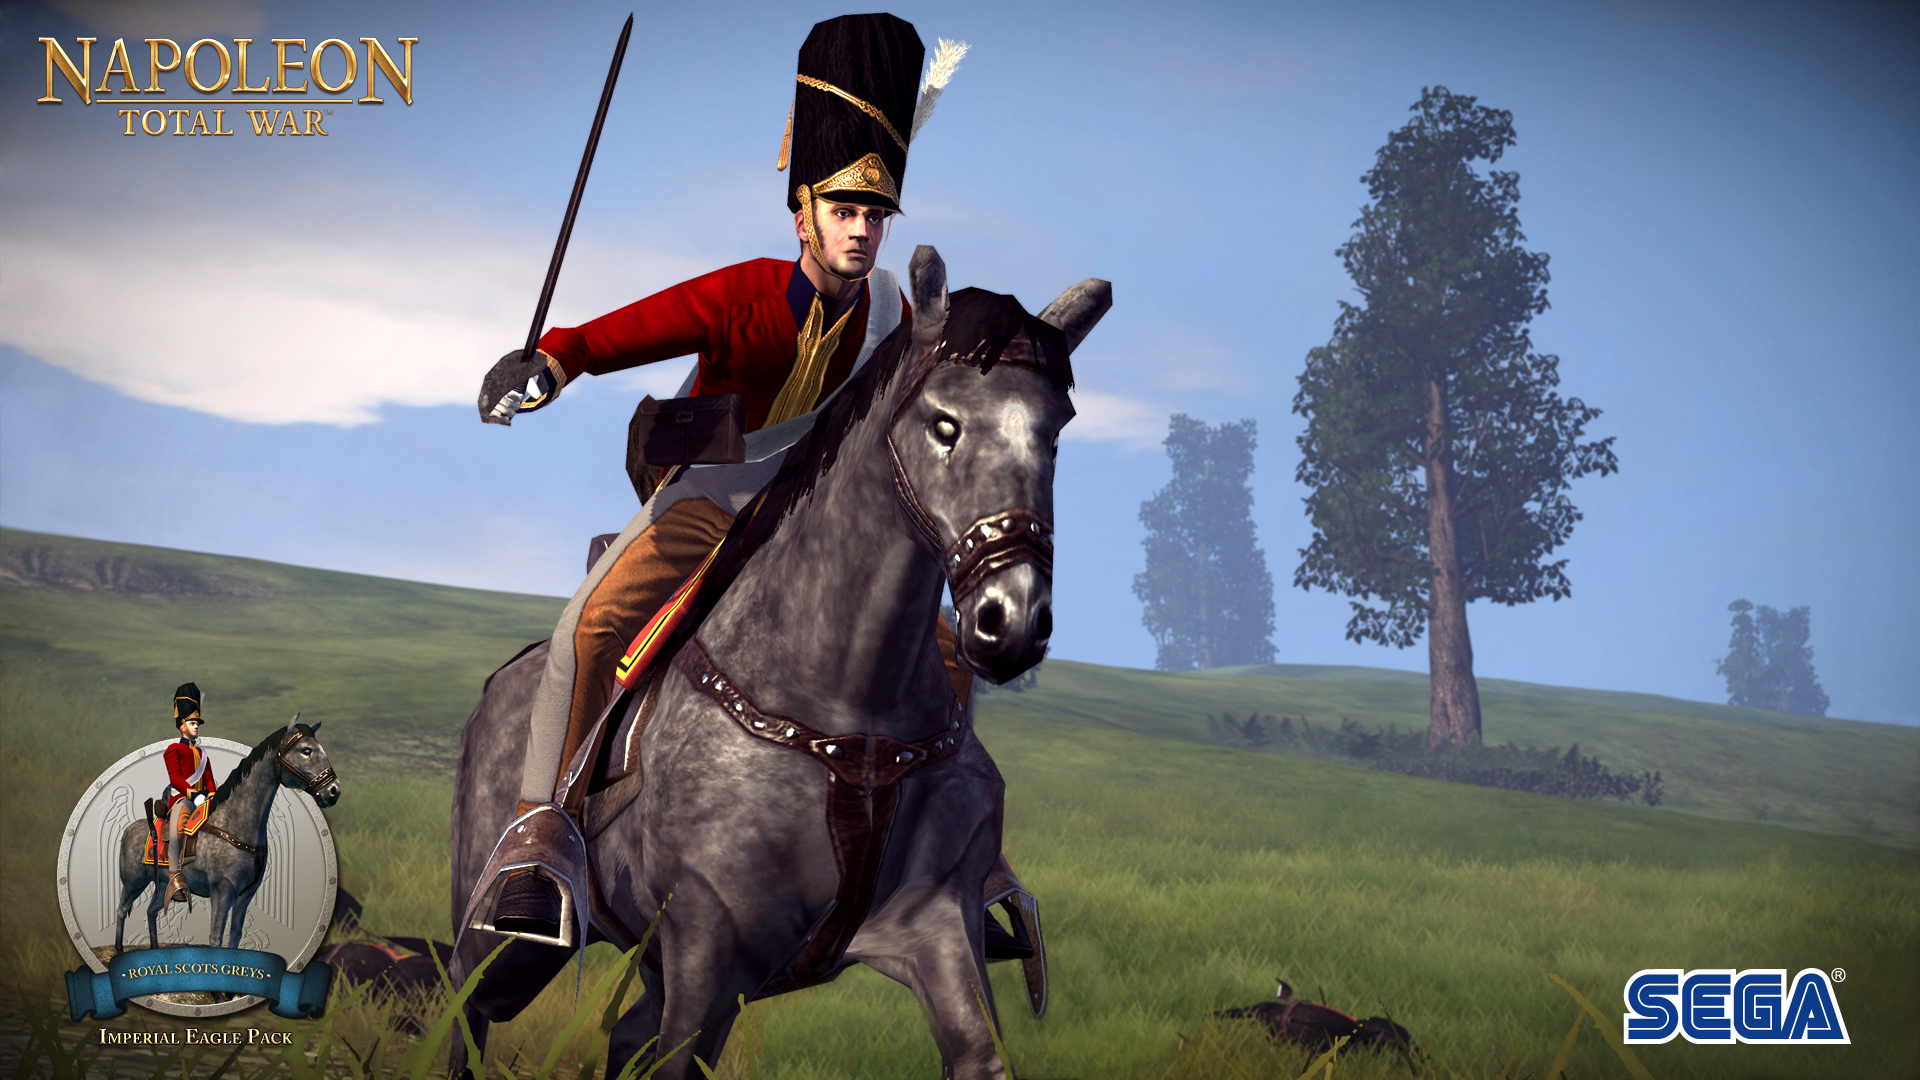 Napoleon: Total War - Imperial Eagle Pack screenshot